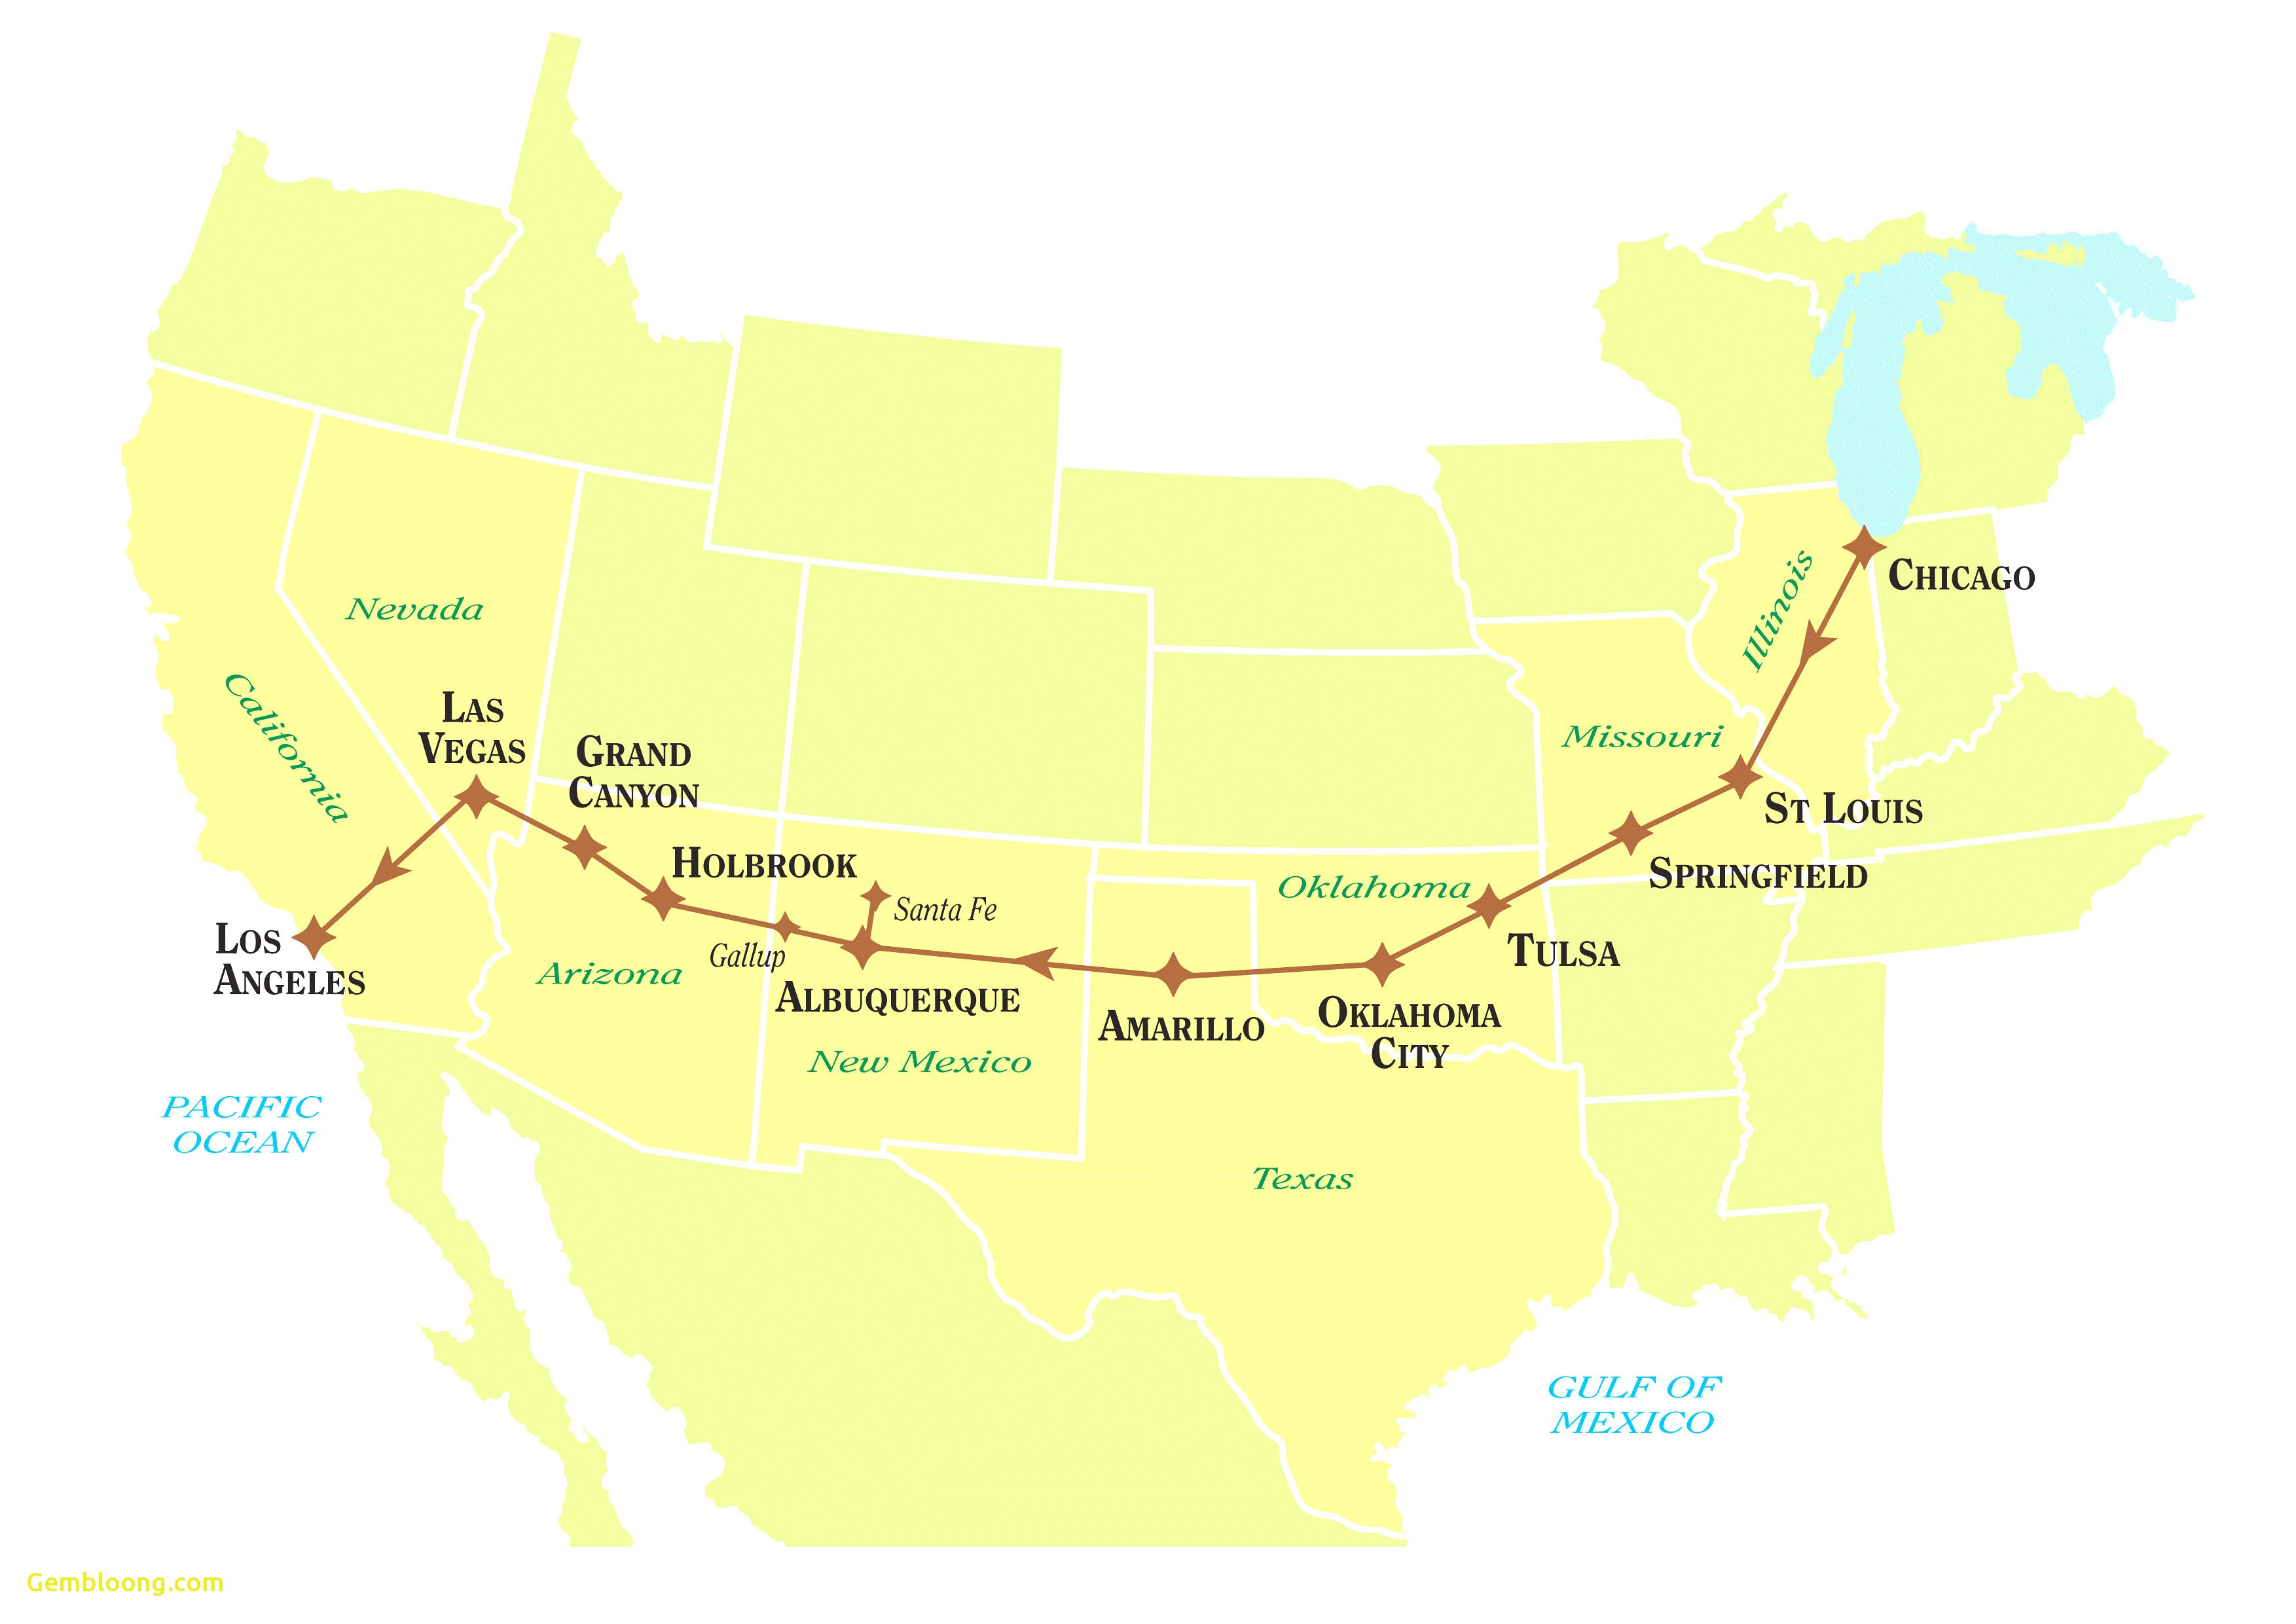 United States Map Showing Route 66 Inspirationa Map Route 66 From - Free Printable Route 66 Map